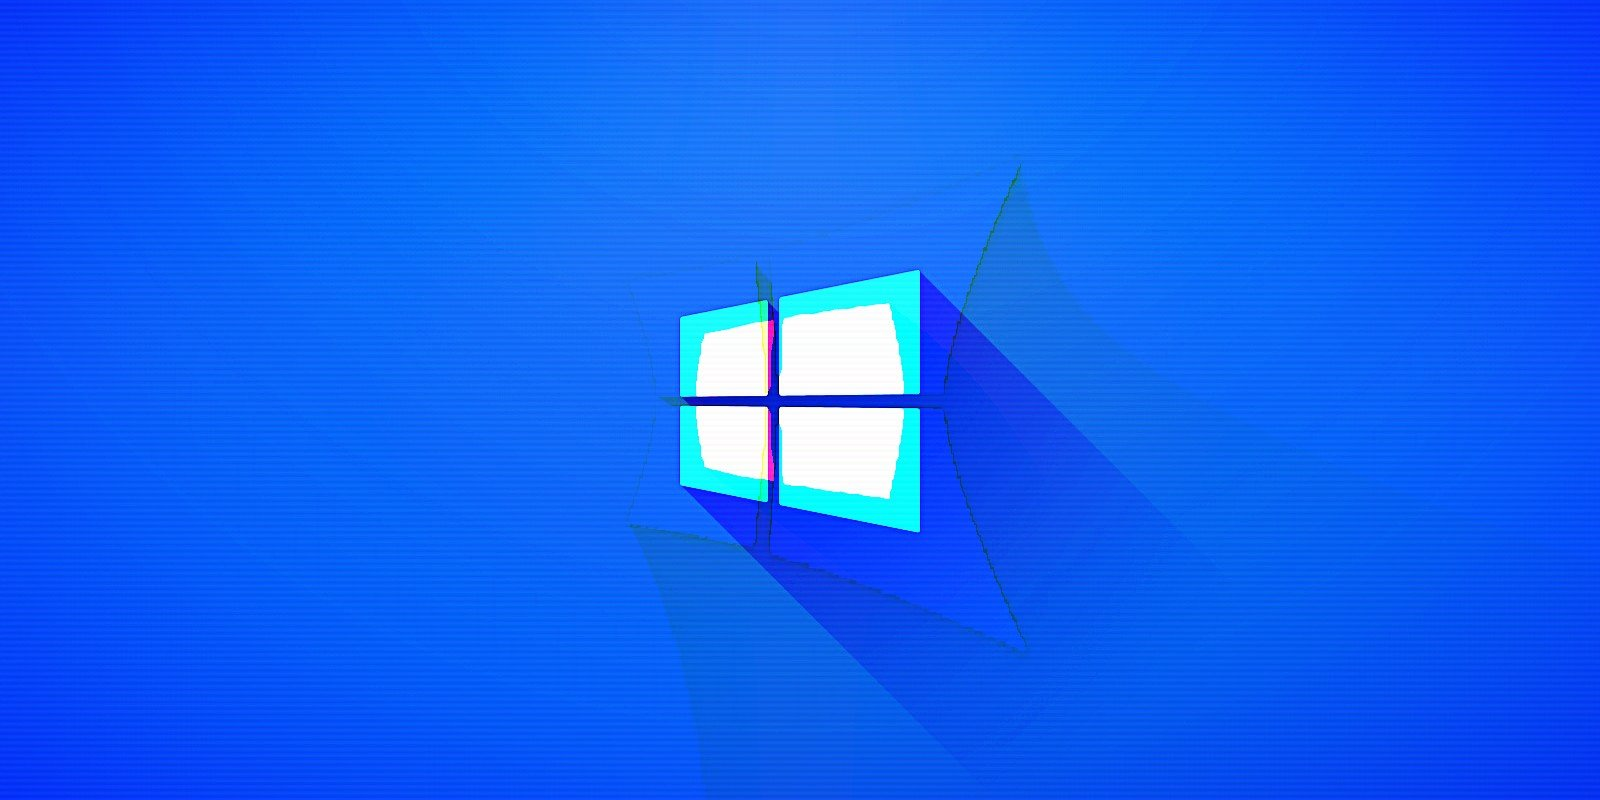 Microsoft fixes new Windows Kerberos security bug in staged rollout